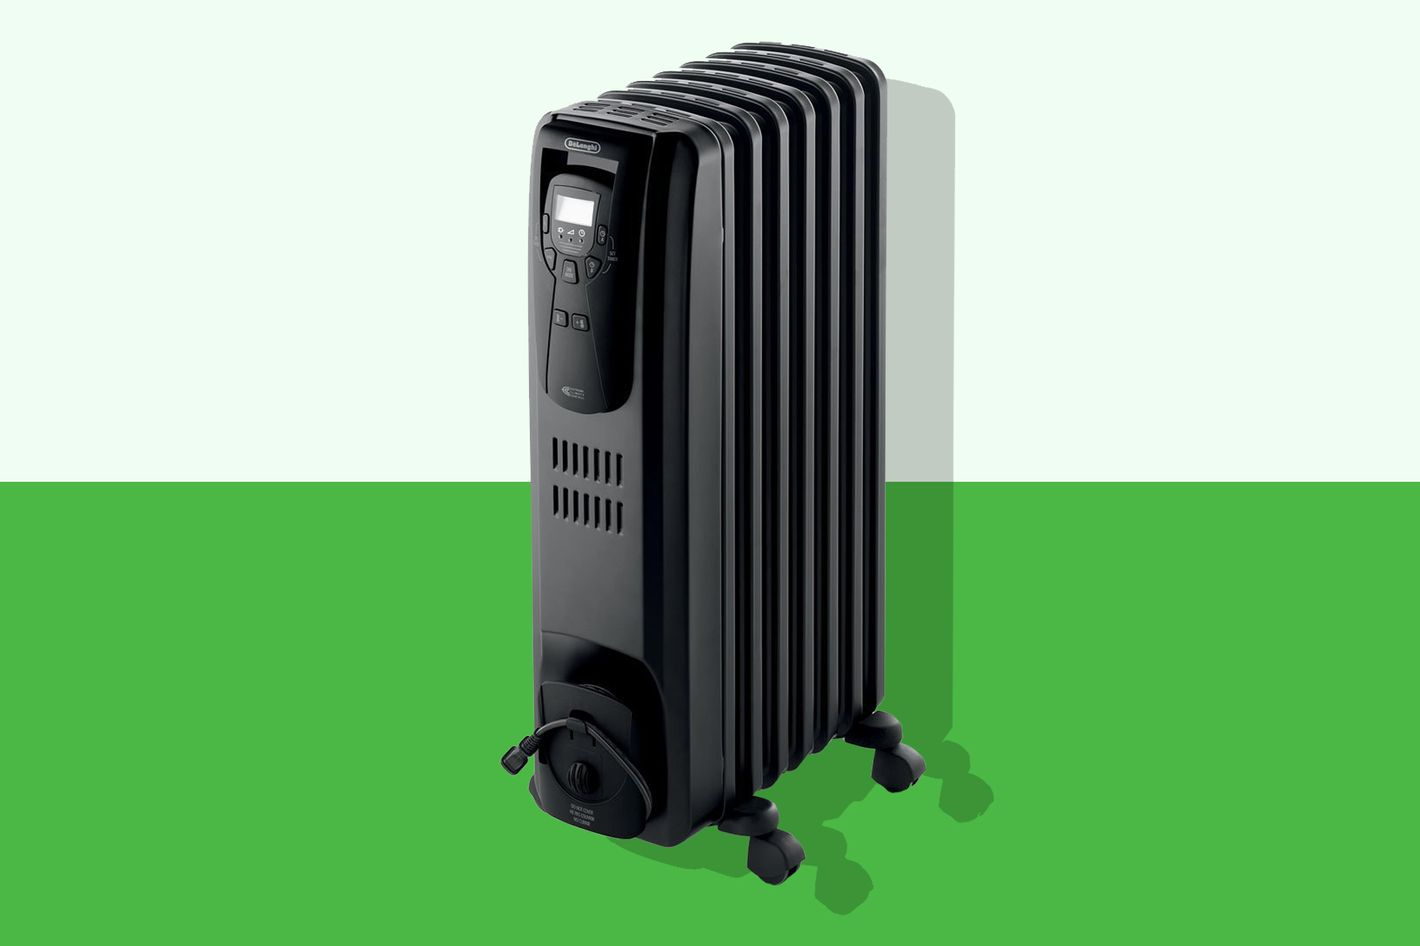 DeLonghi Oil Filled Radiator Heater Black 1500W